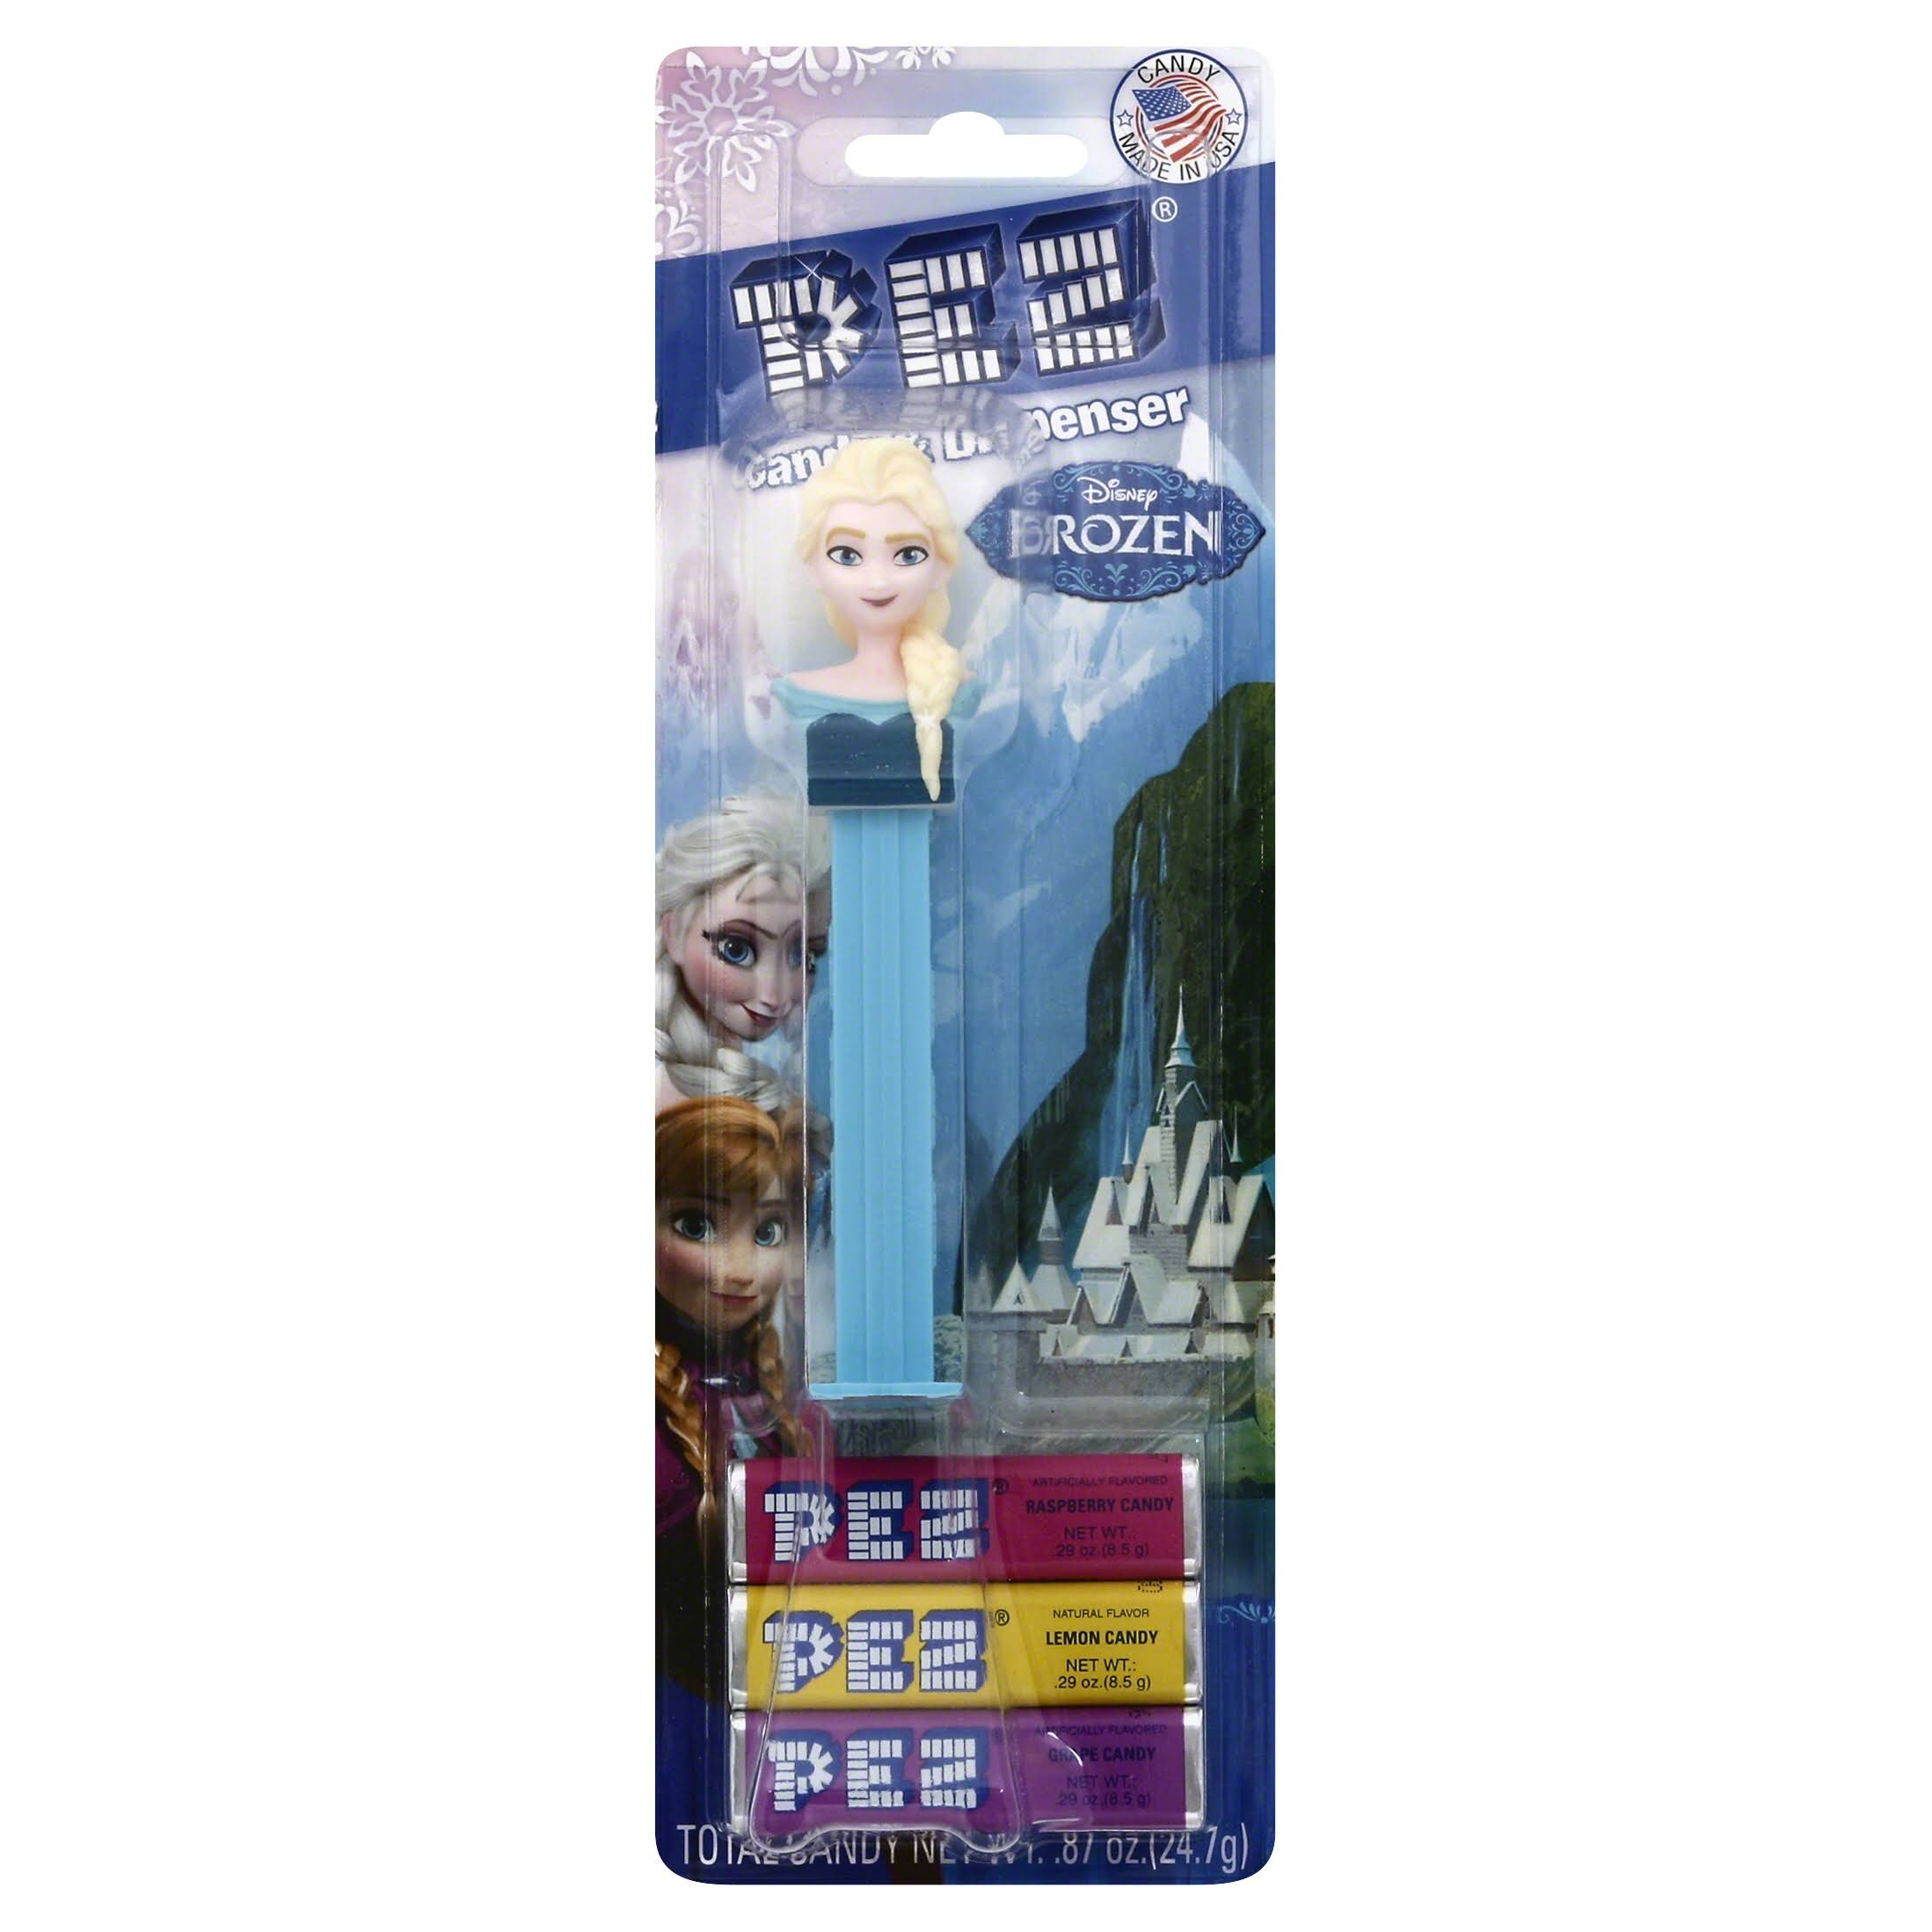 Pez Dispenser Disney Frozen Set - Elsa, Anna & Olaf